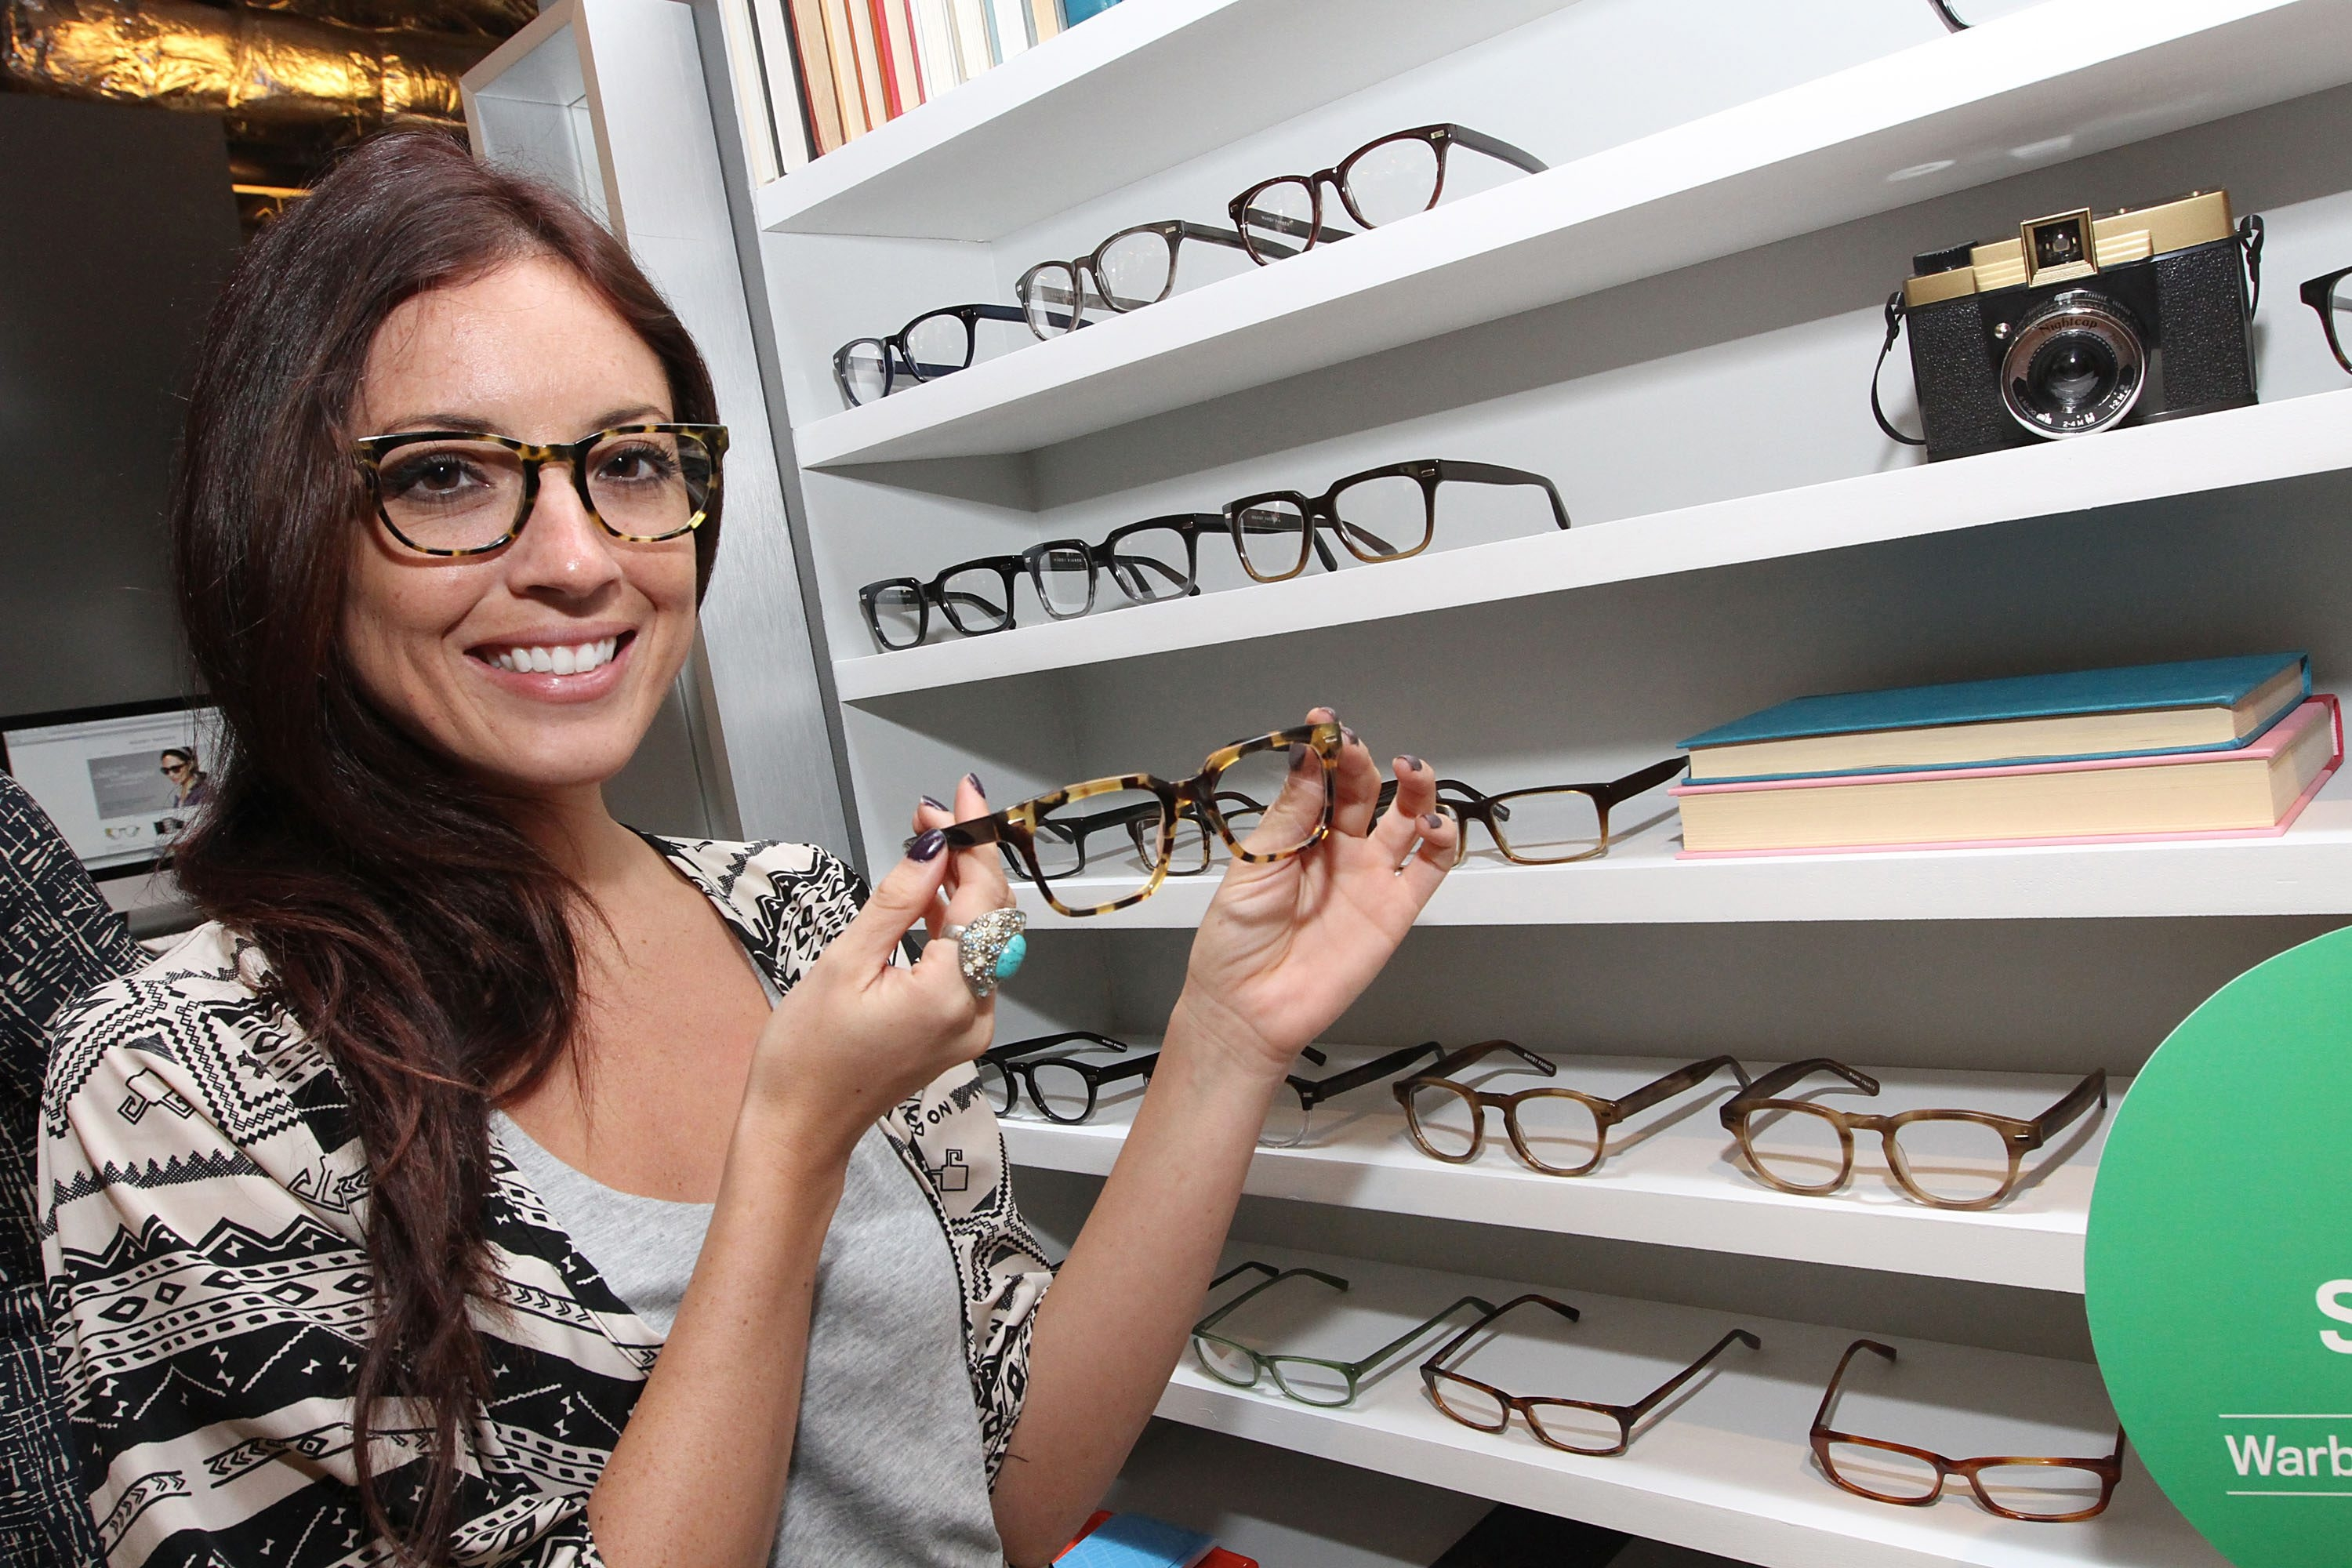 Retailers like Warby Parker also allow consumers to purchase glasses online.